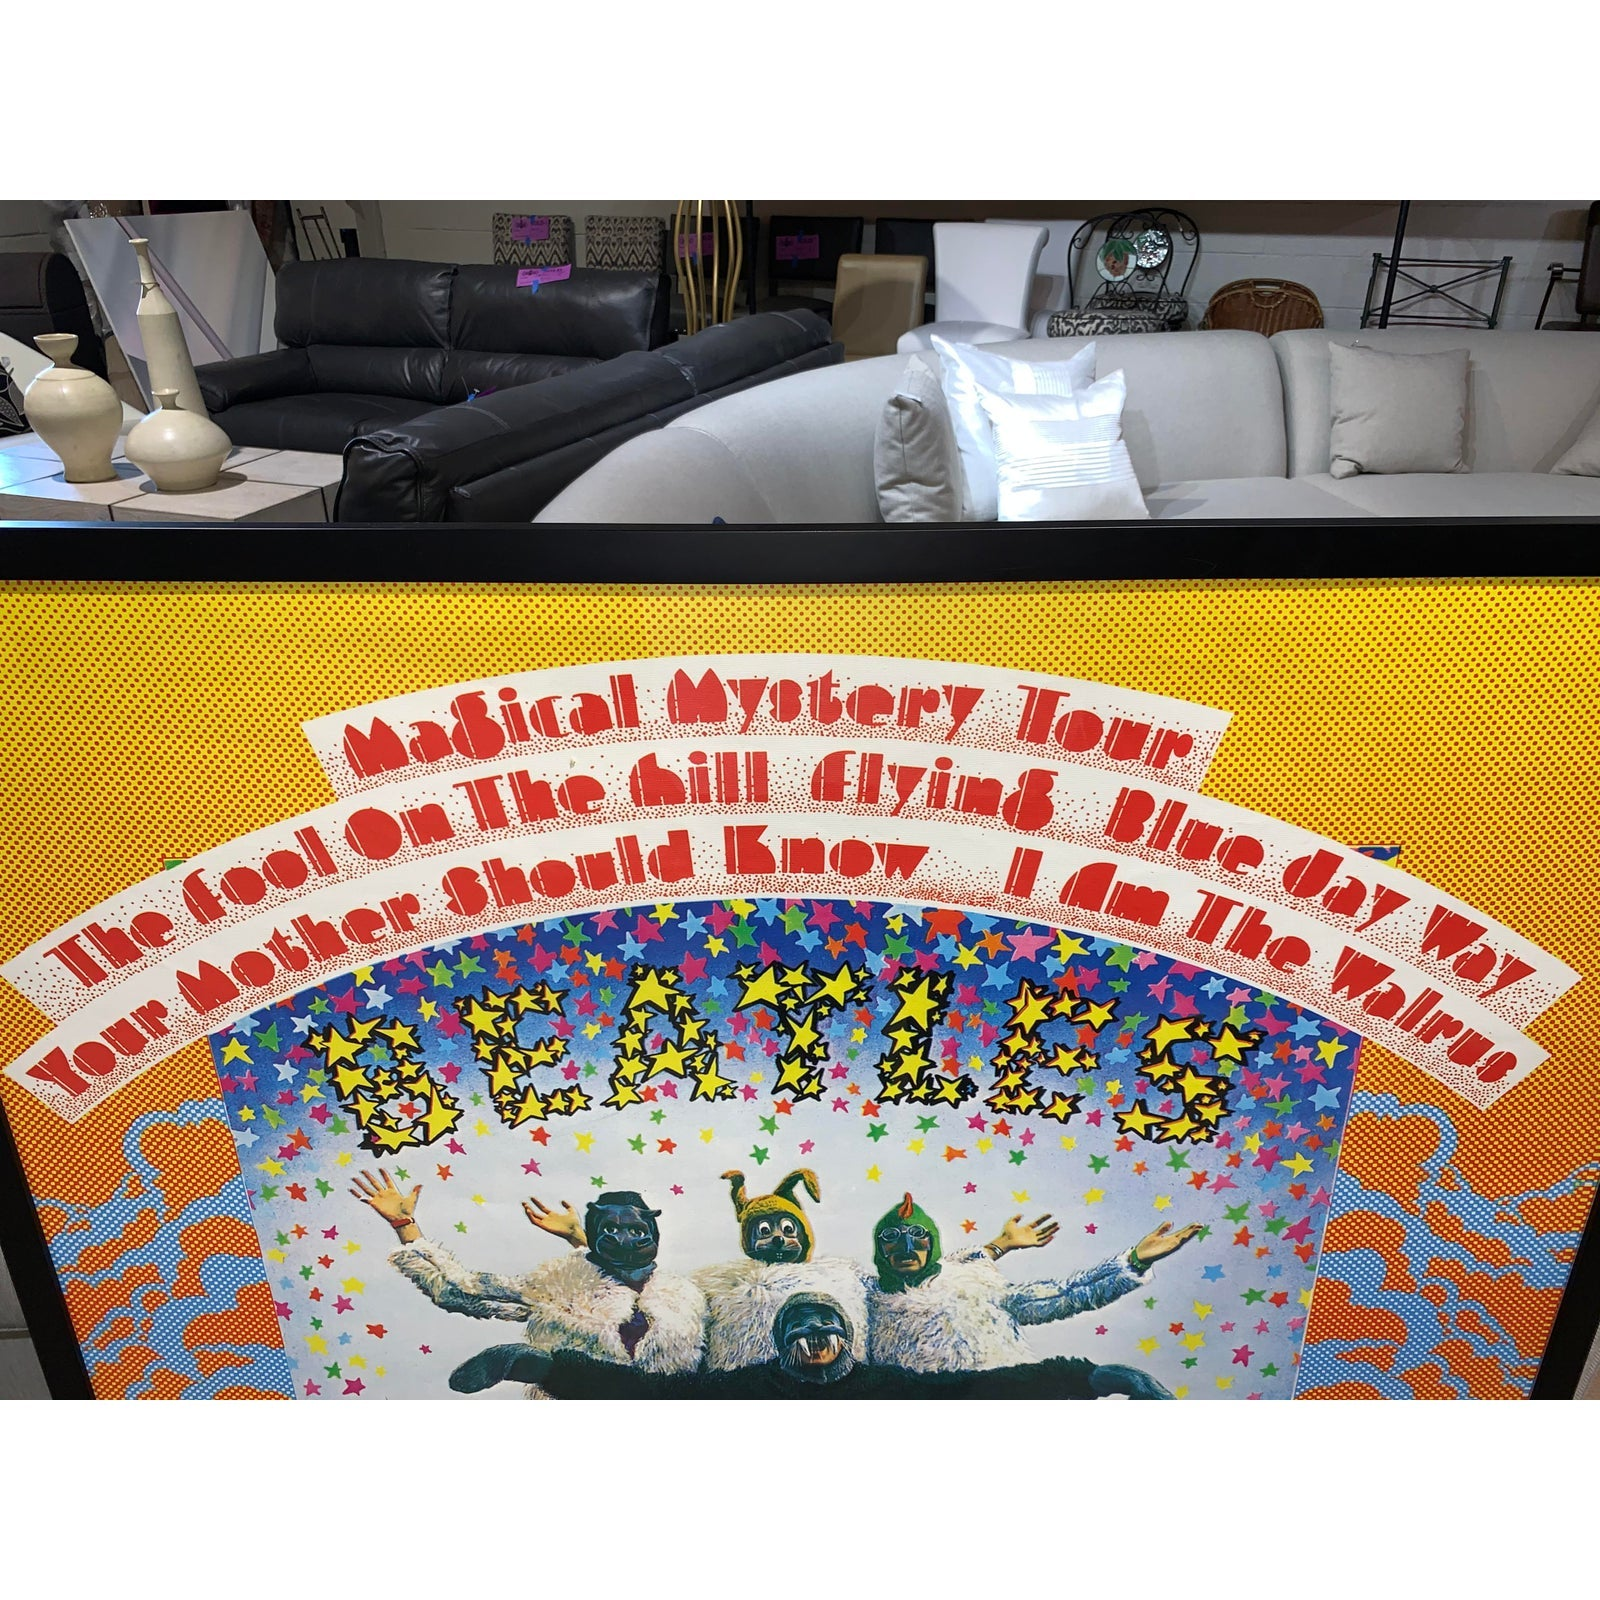 The Magical Mystery Tour Print - Lynn's World Consignment™